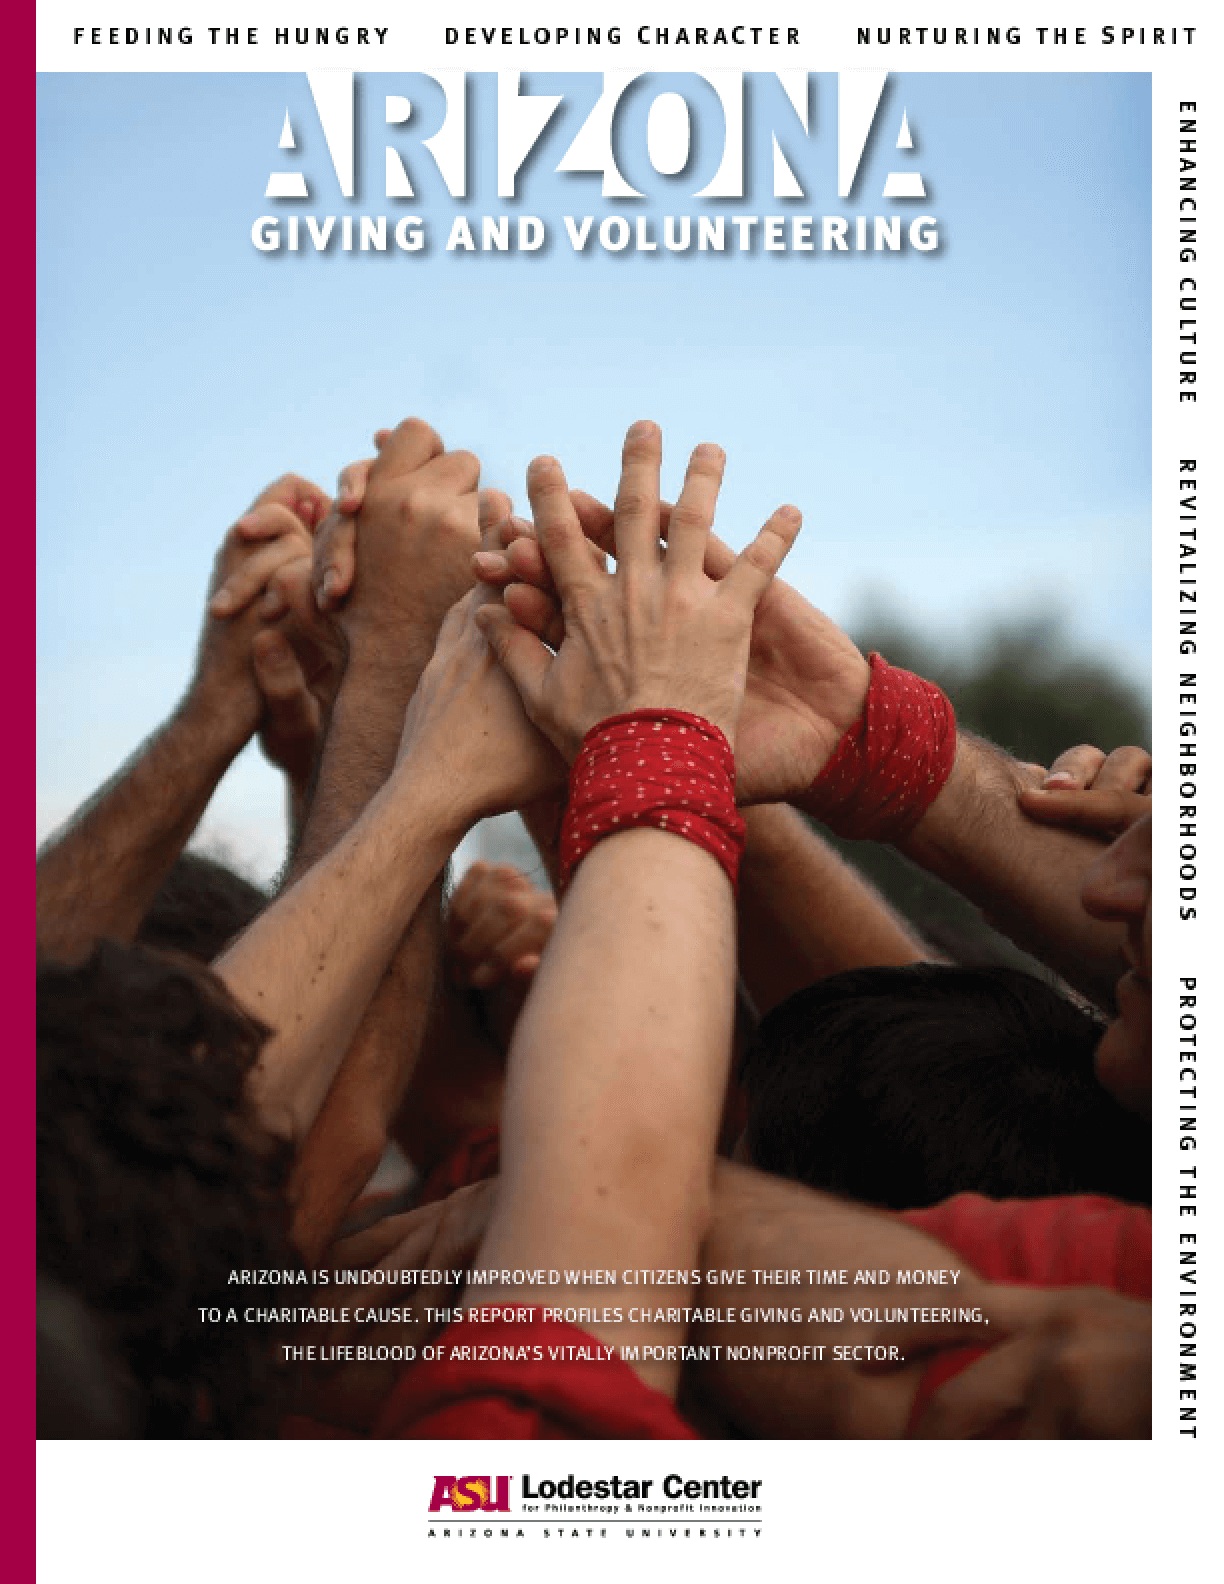 2008 Arizona Giving and Volunteering Report